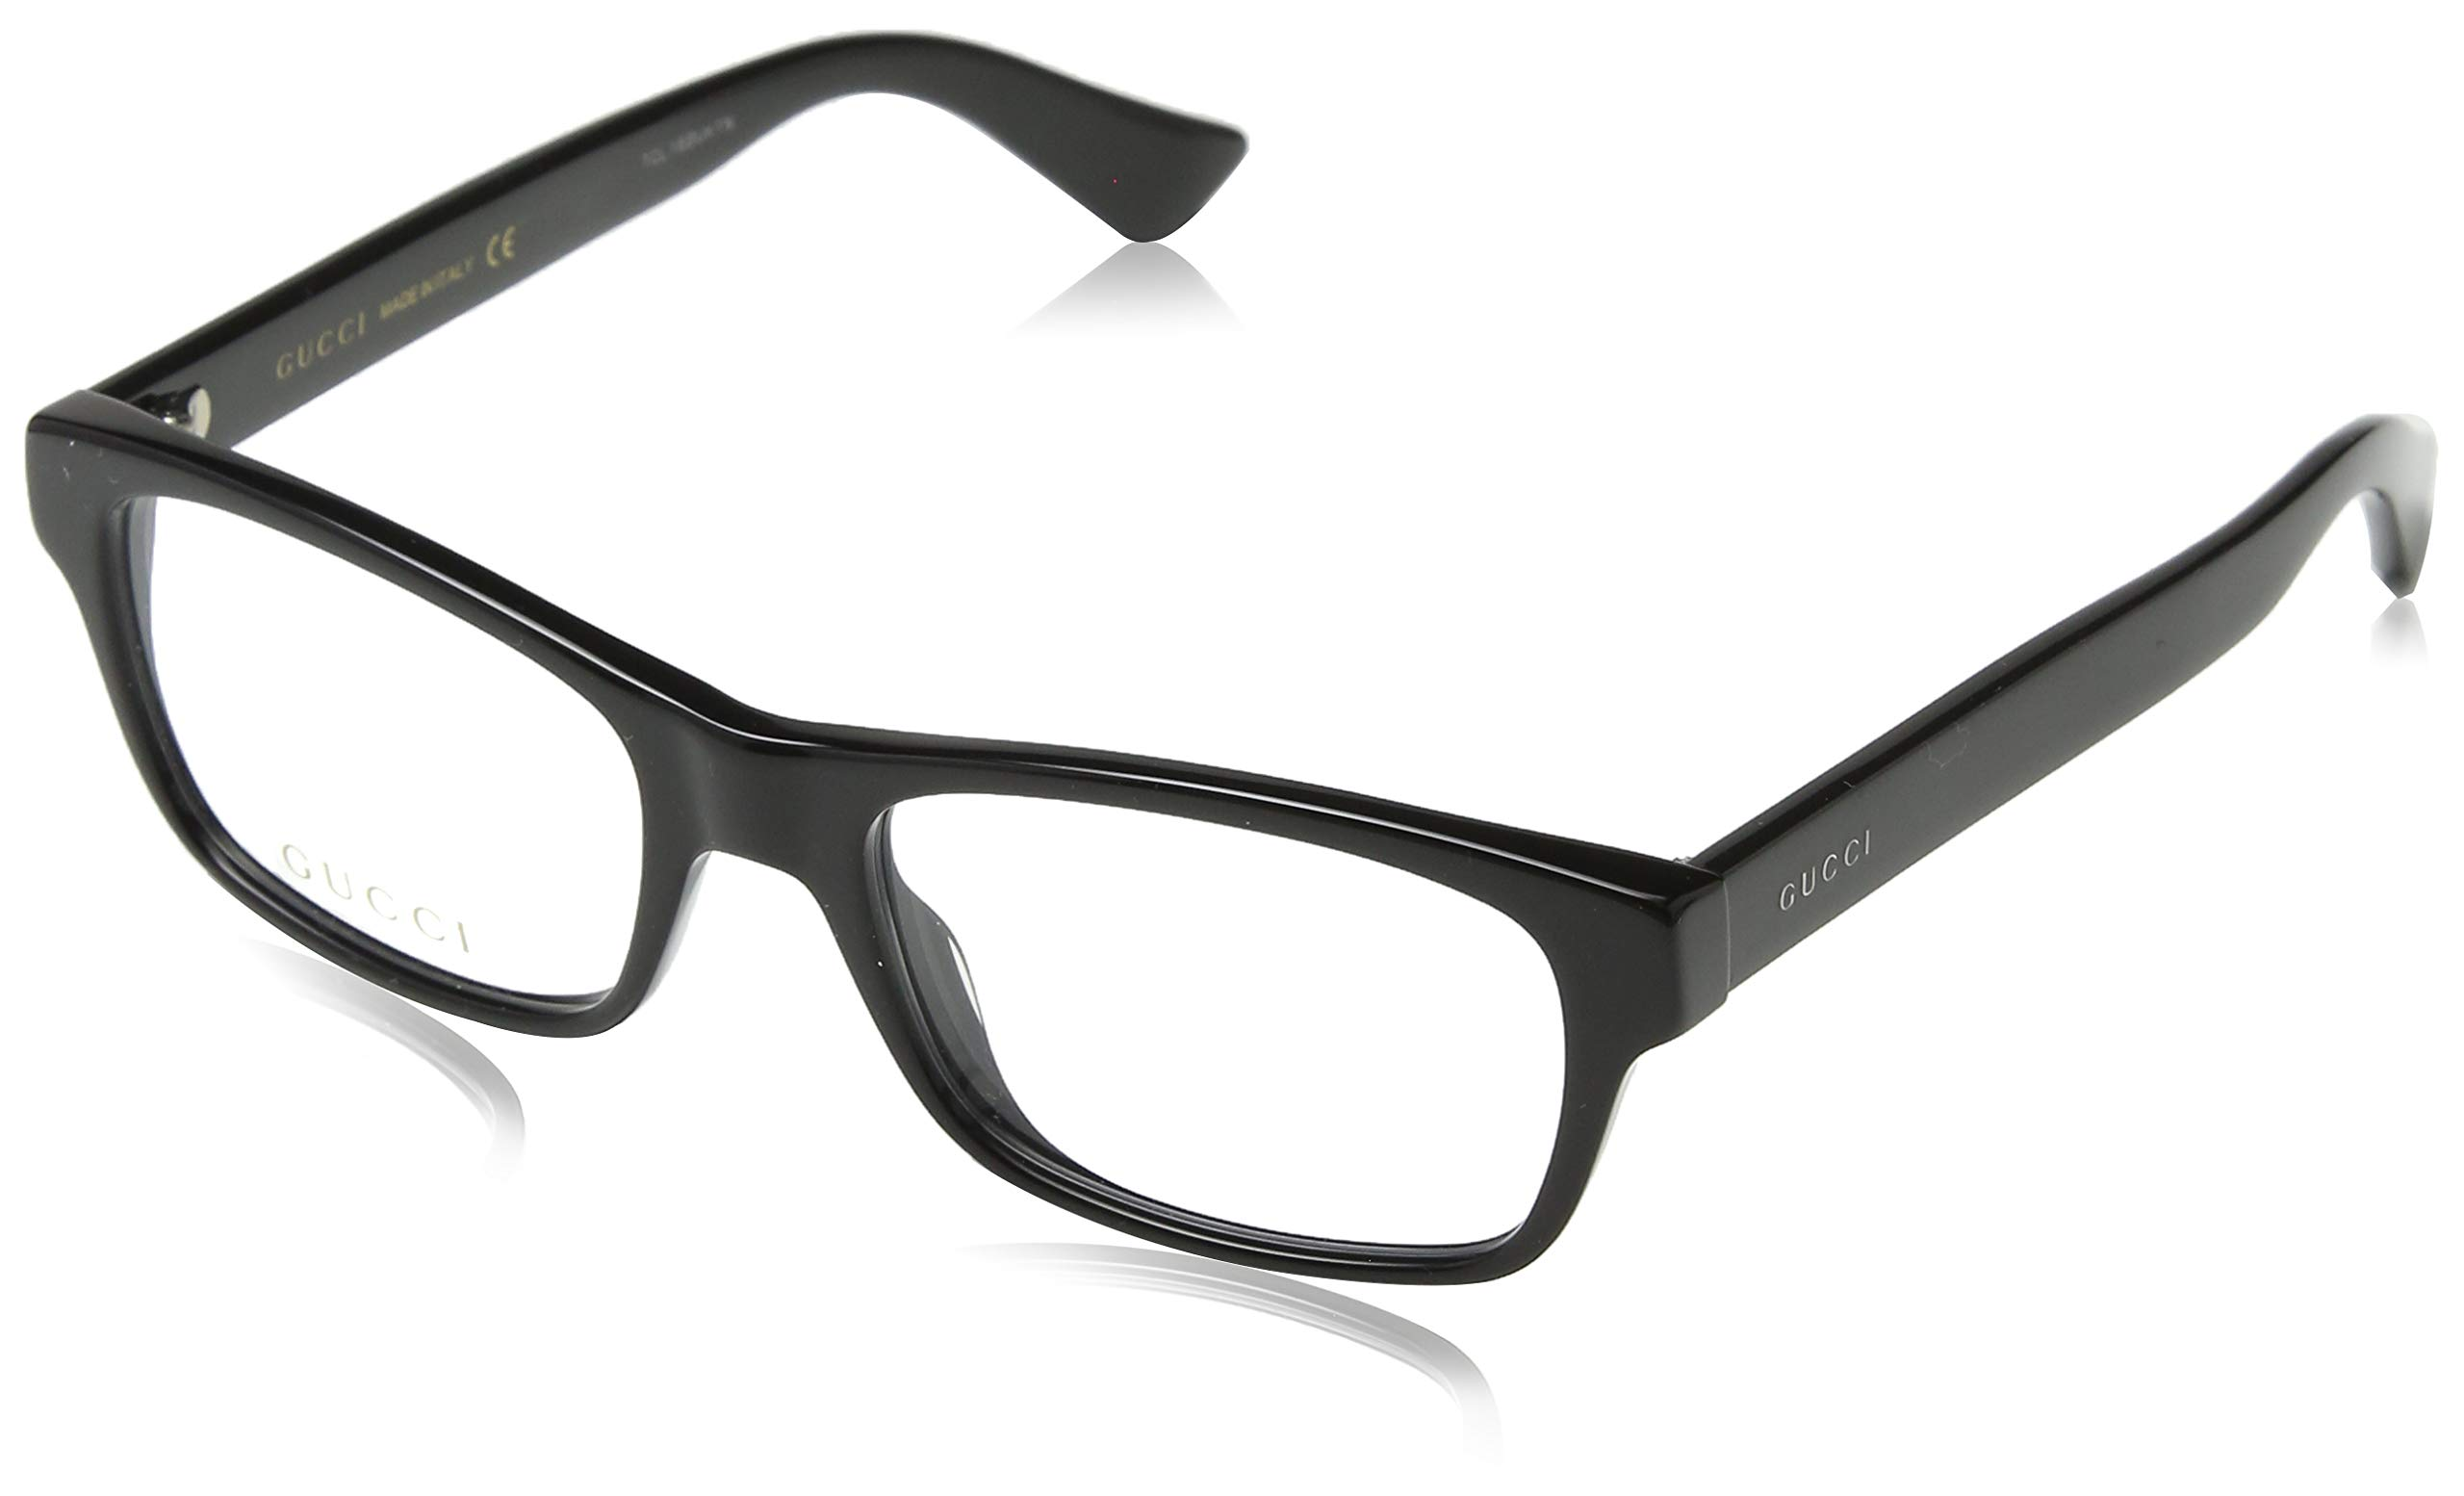 Gucci GG0006O Optical Frame 001 Black Black Transparent 53 mm by Gucci